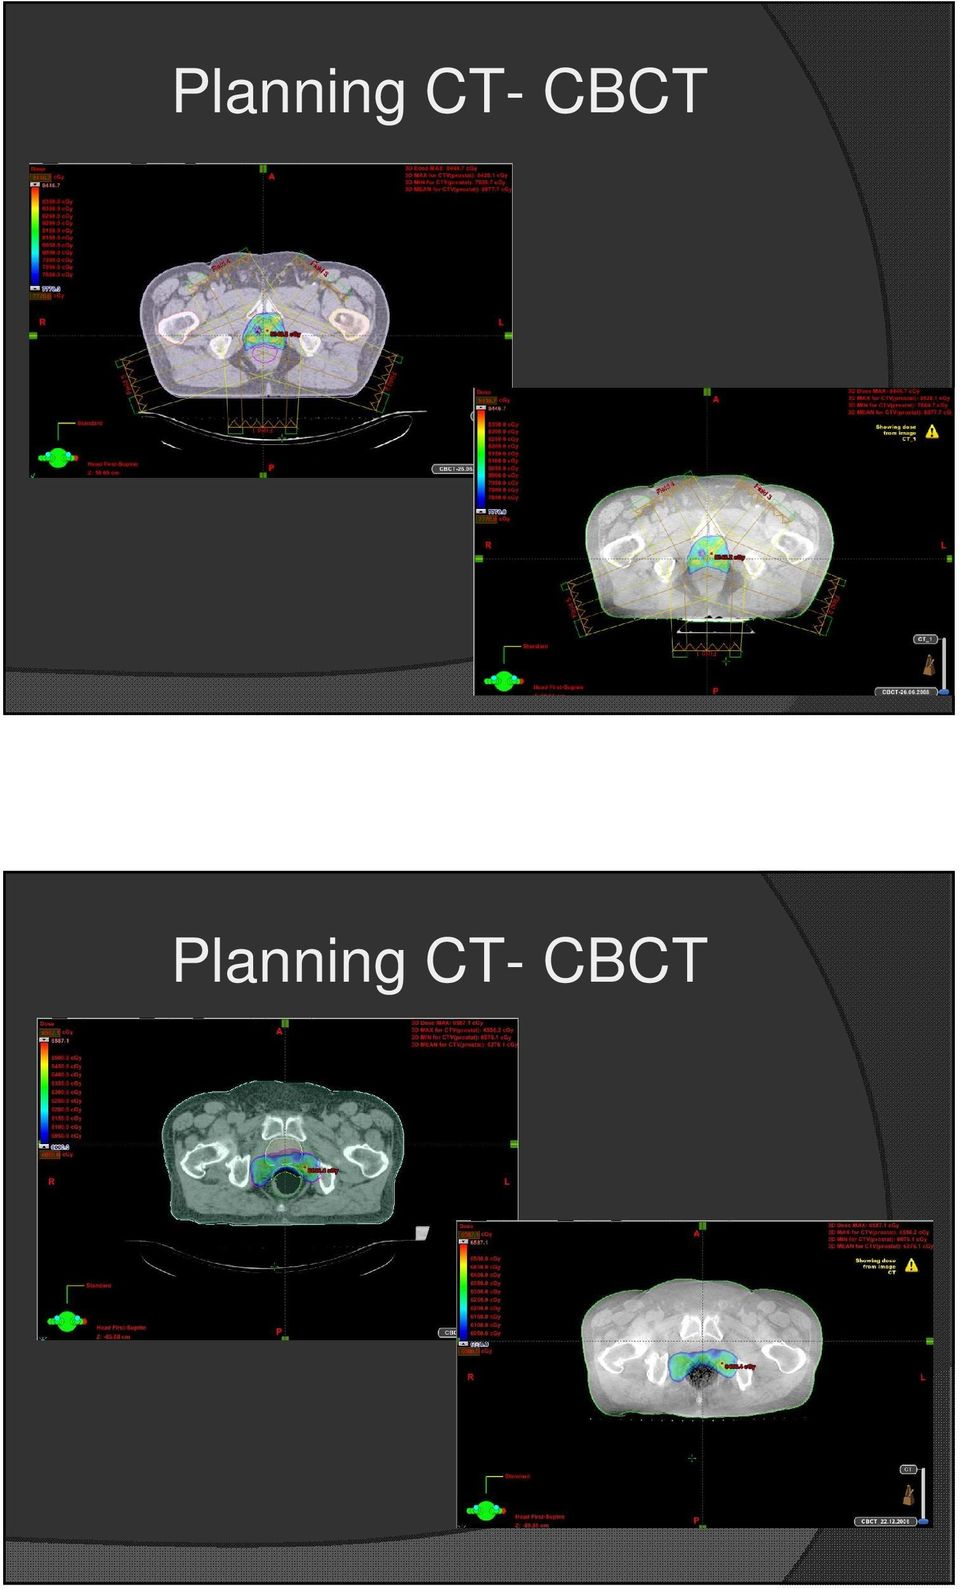 CT- CBCT